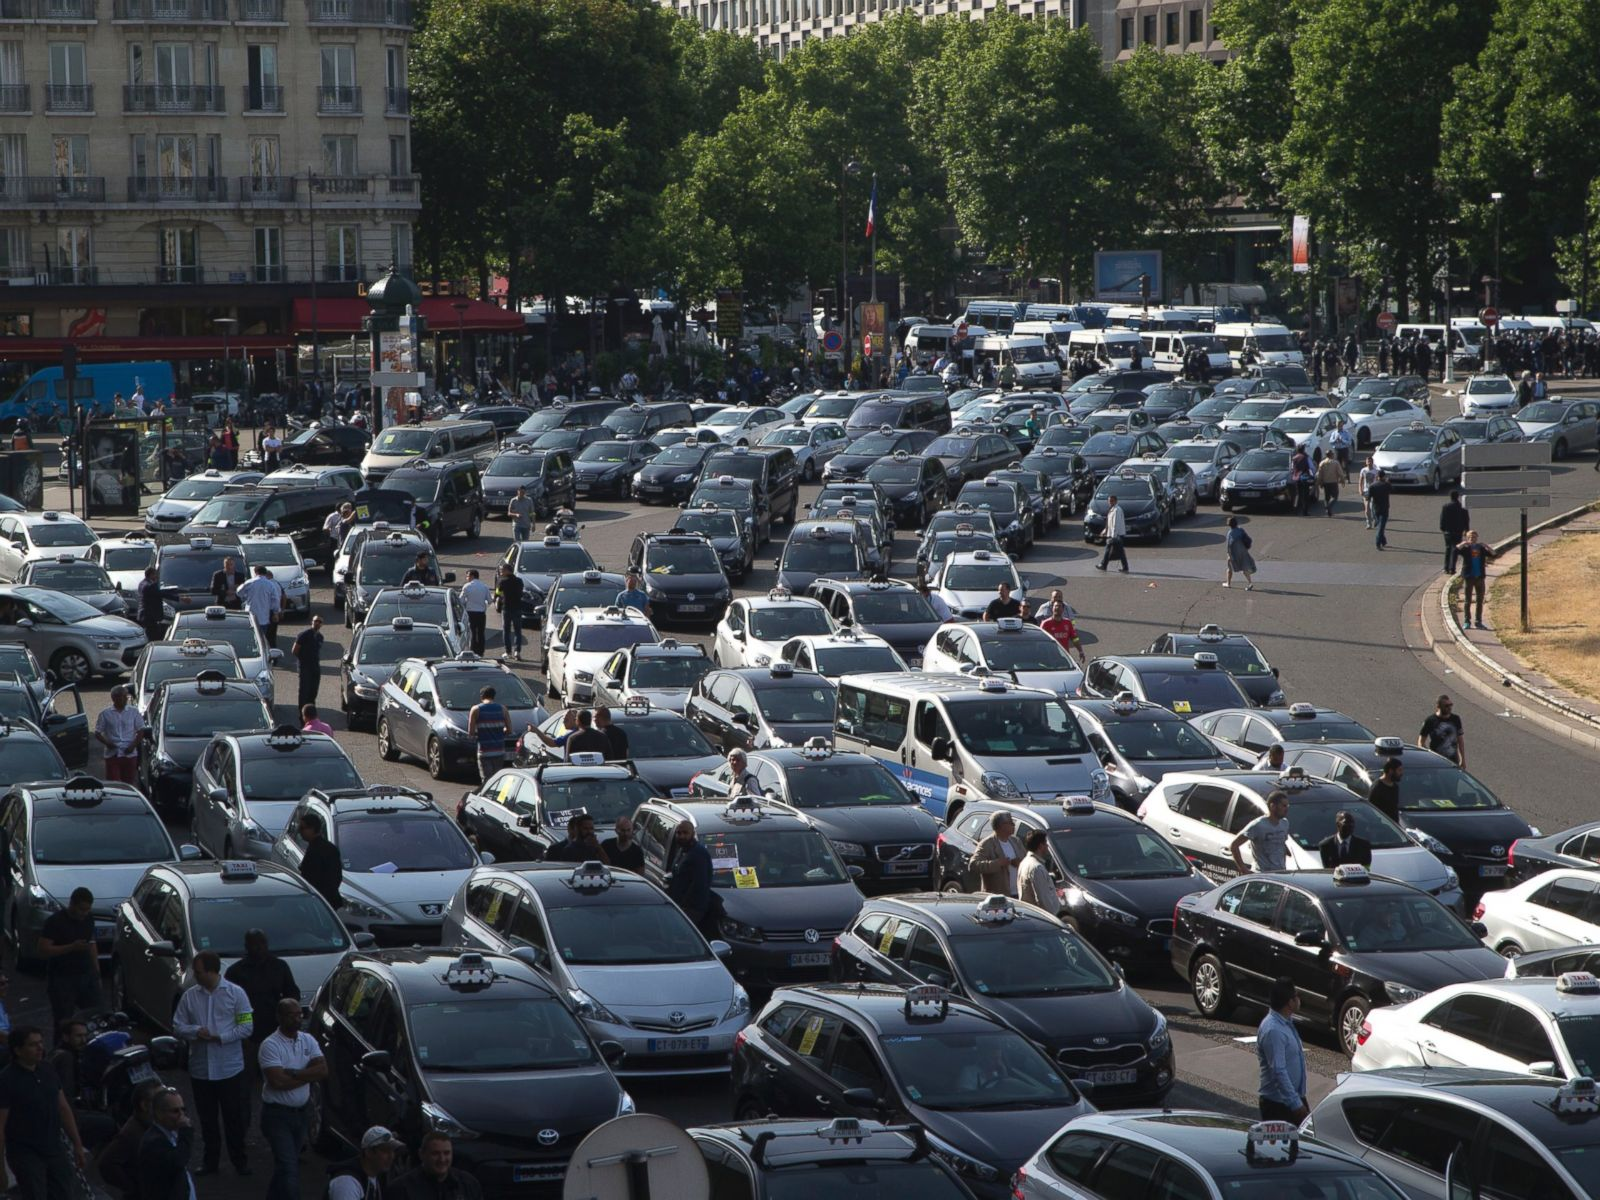 UberPop Banned in Paris Amid Taxi Driver Protests at